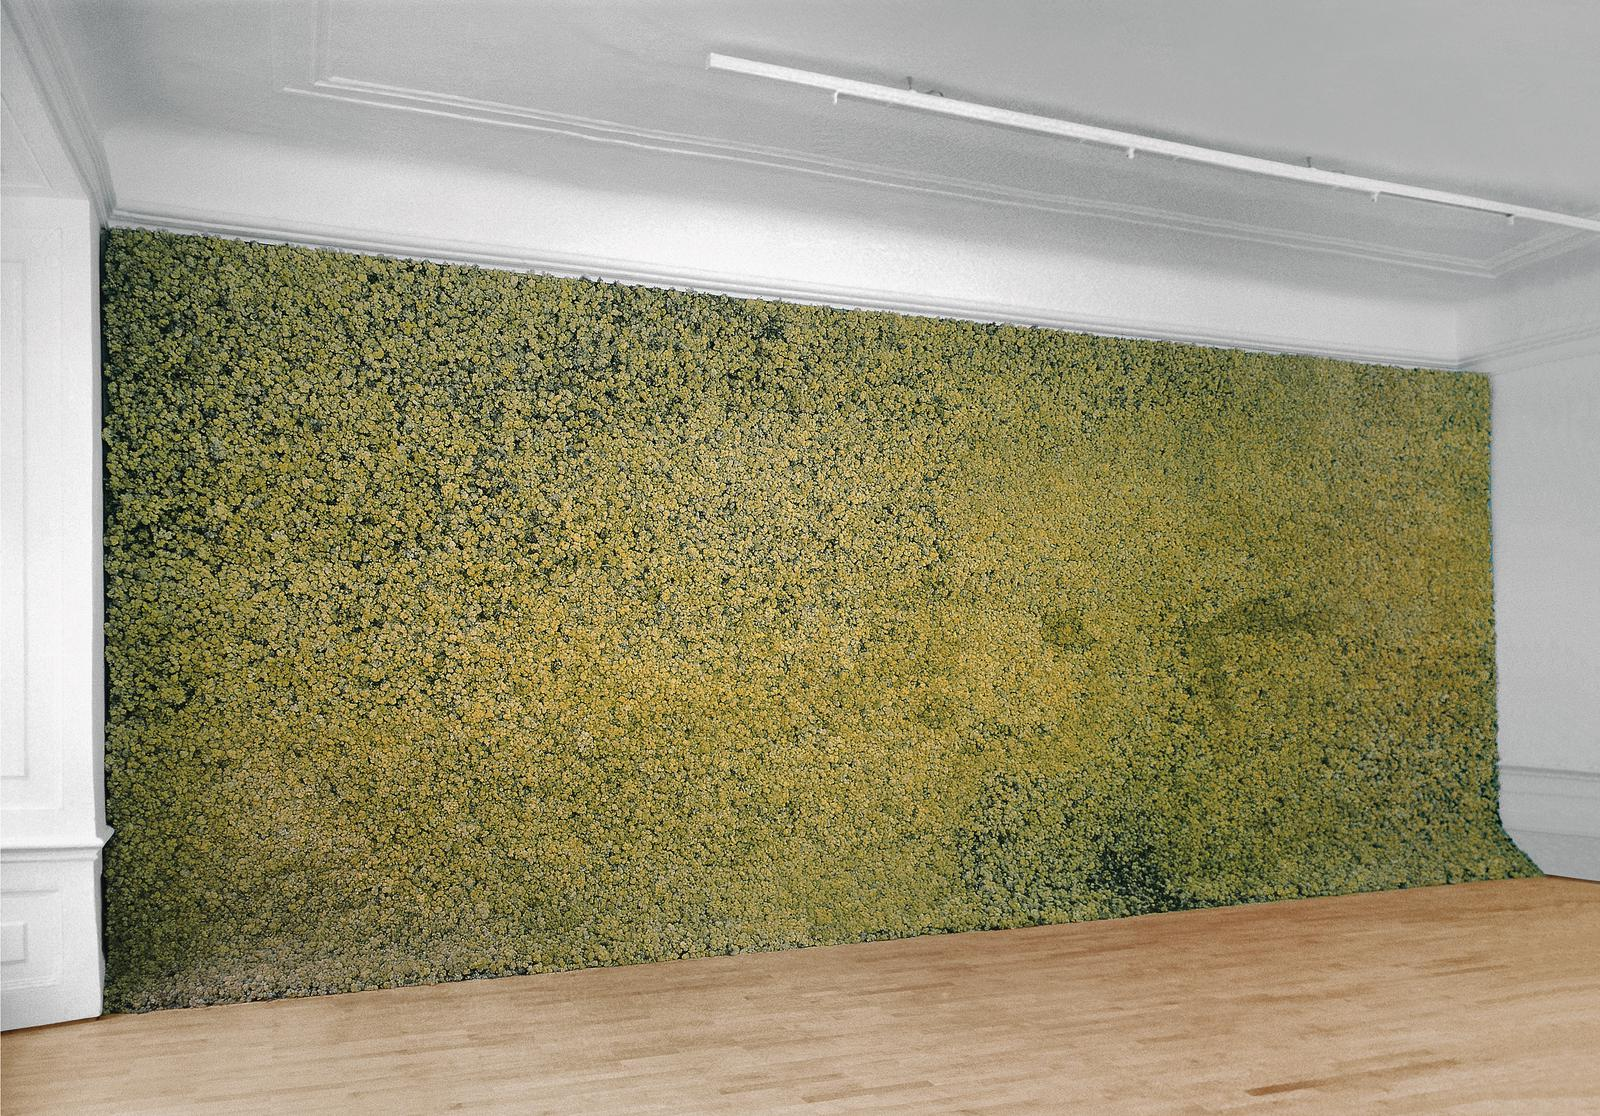 Moss Wall Artwork Studio Olafur Eliasson